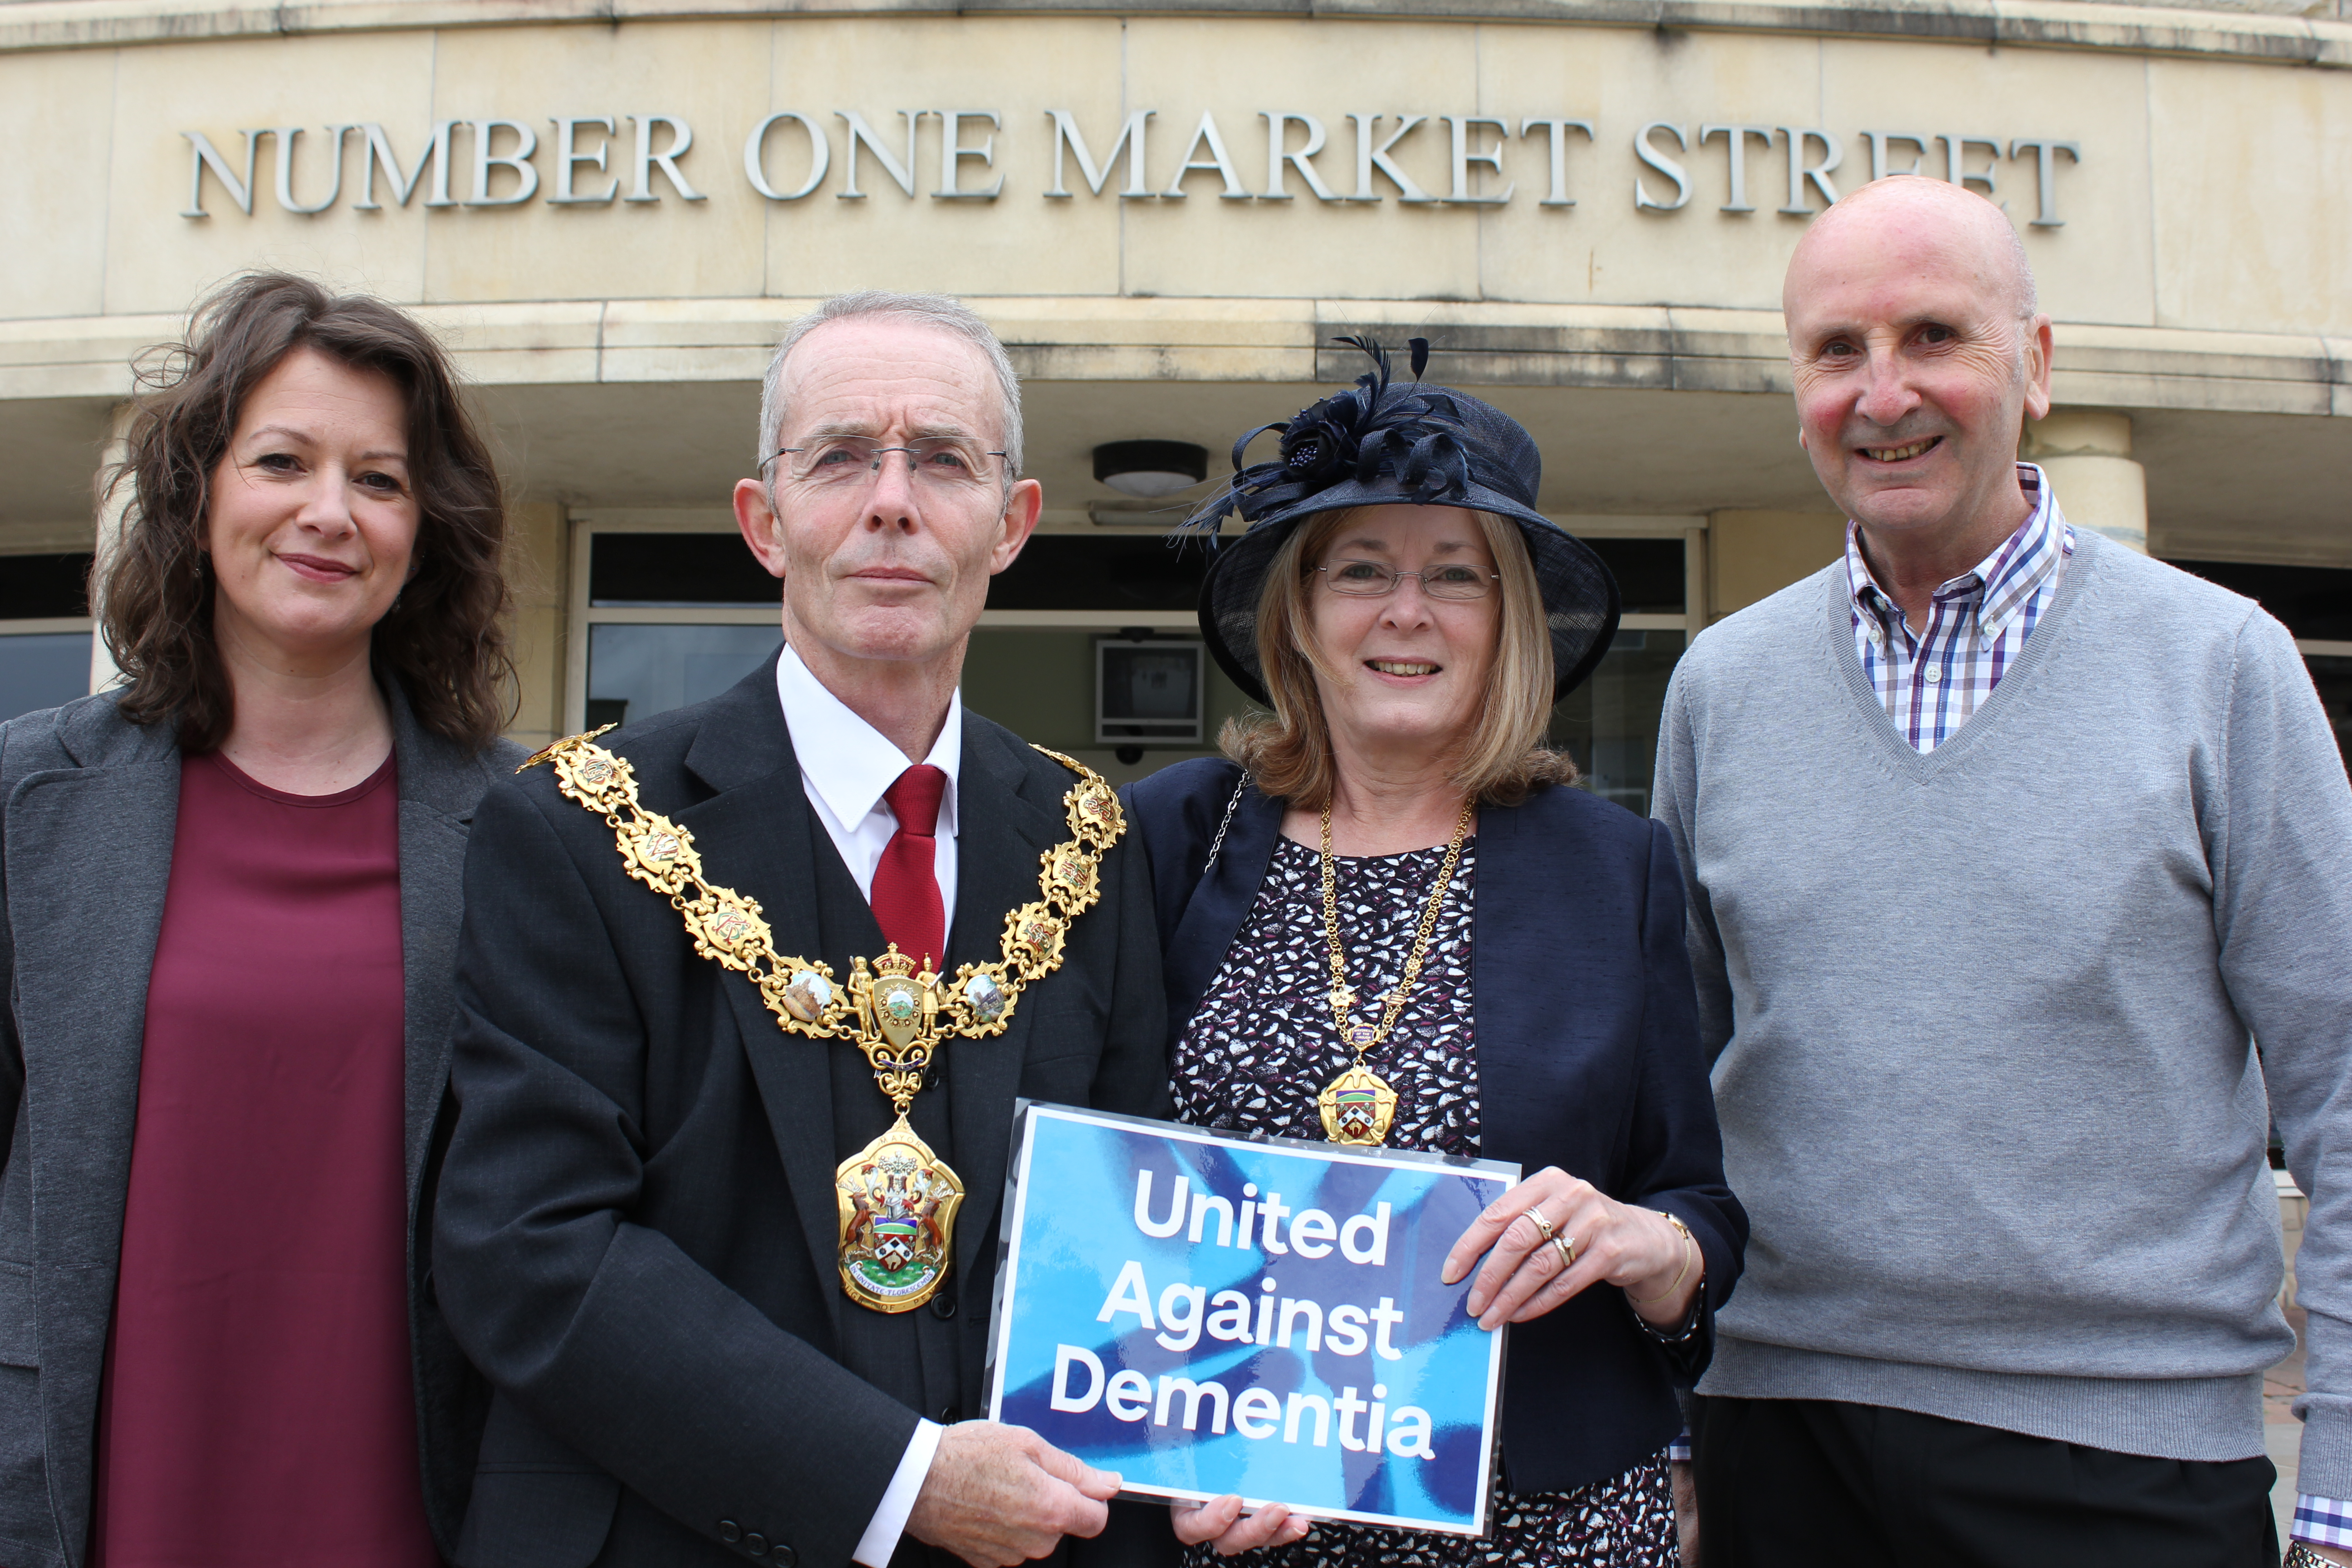 Number One in aim to make Pendle Dementia friendly